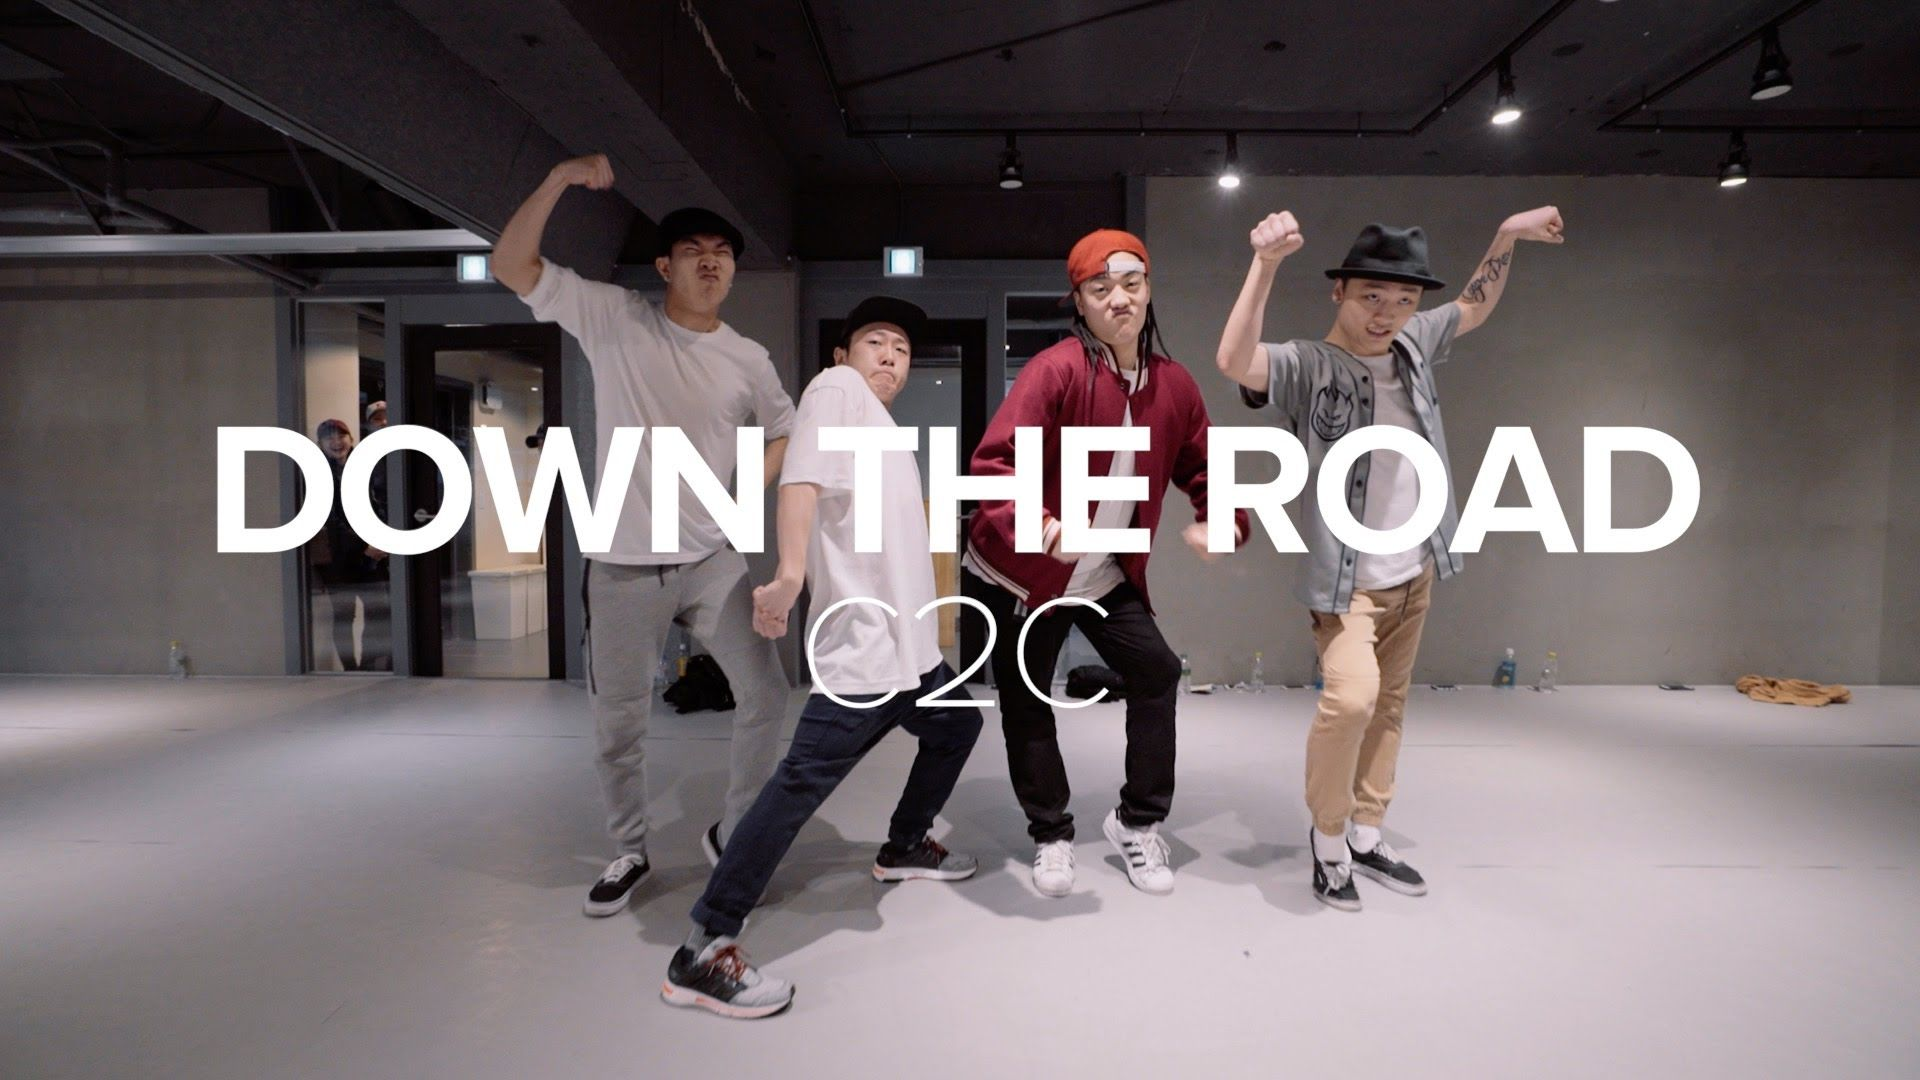 Down The Road Cc Assall Crew Choreography